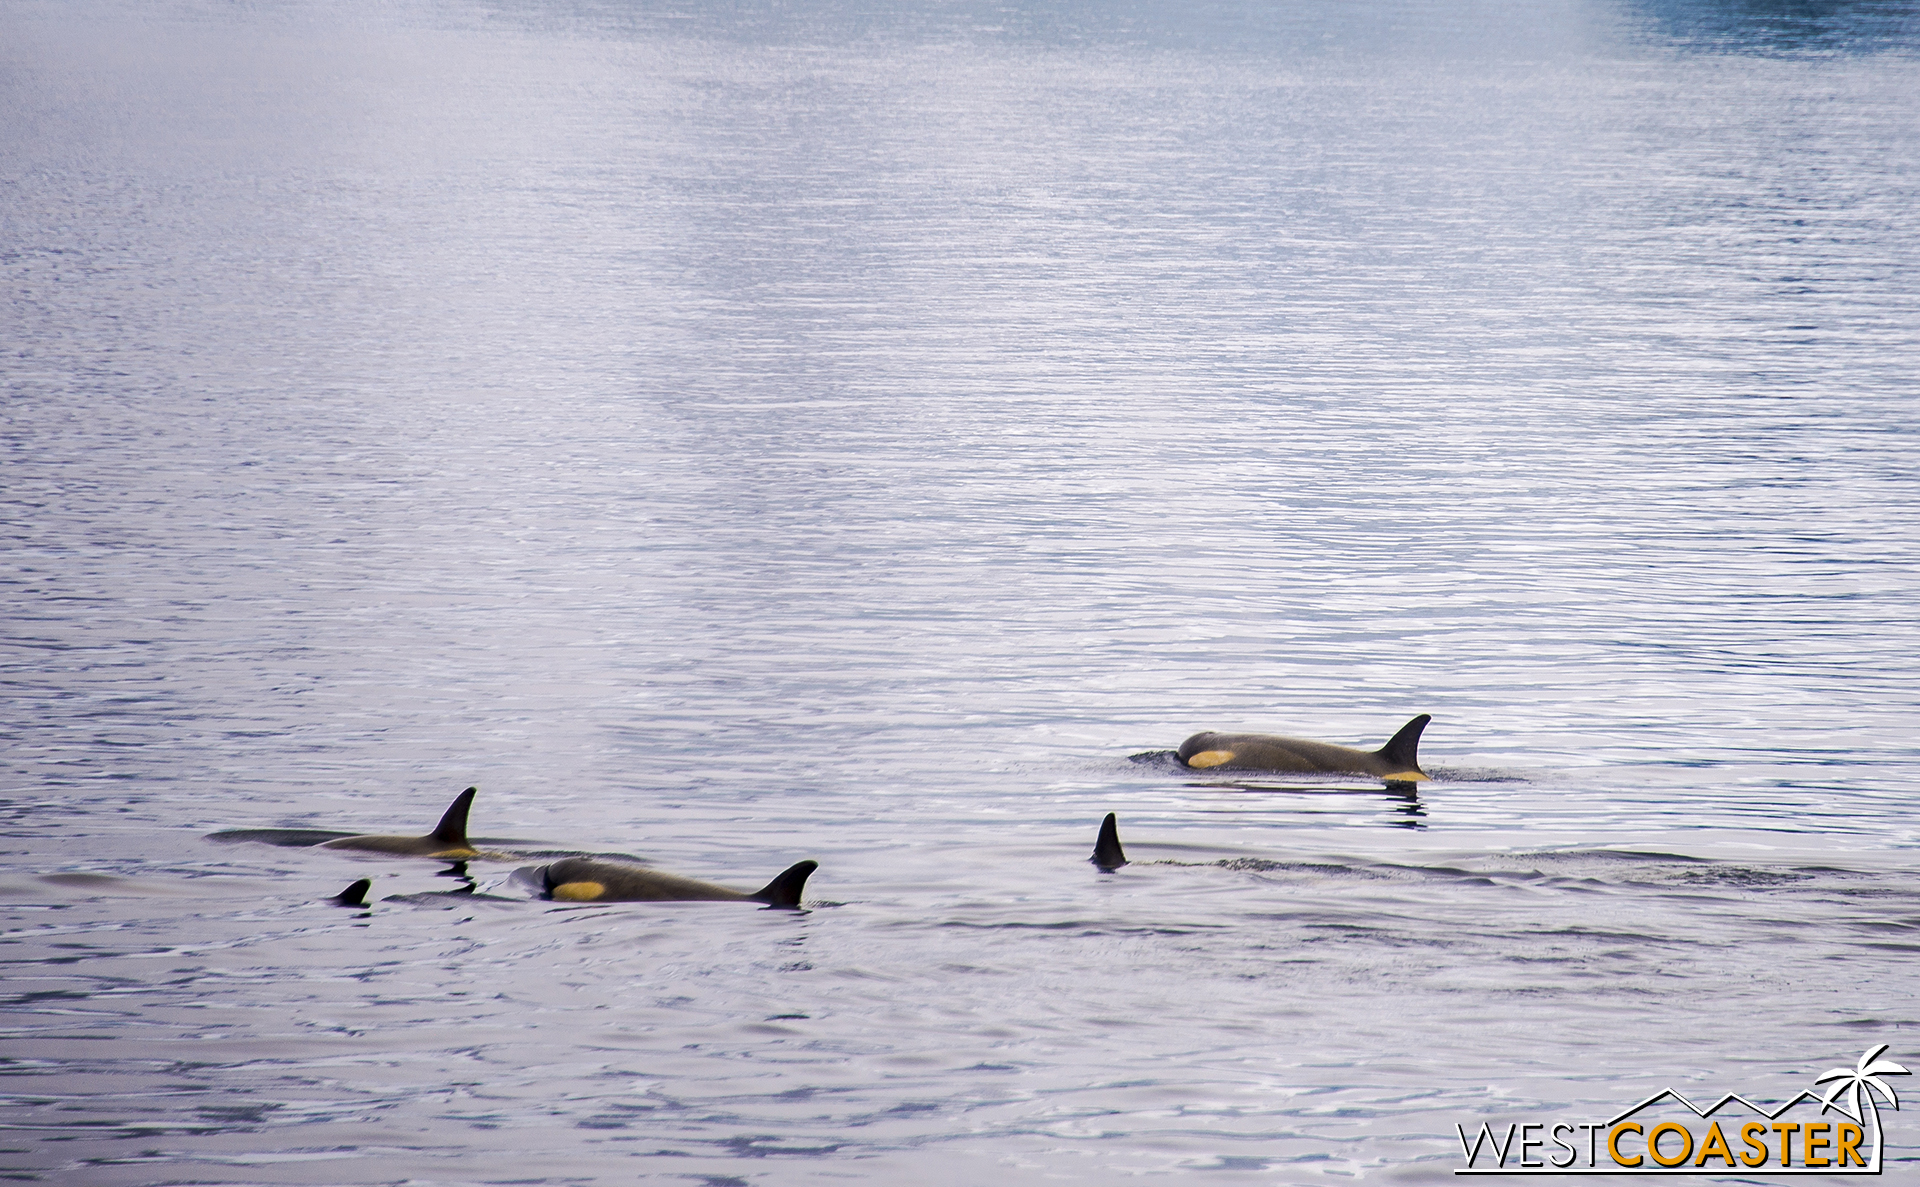 The killer whales in a casual mood, drifting along.